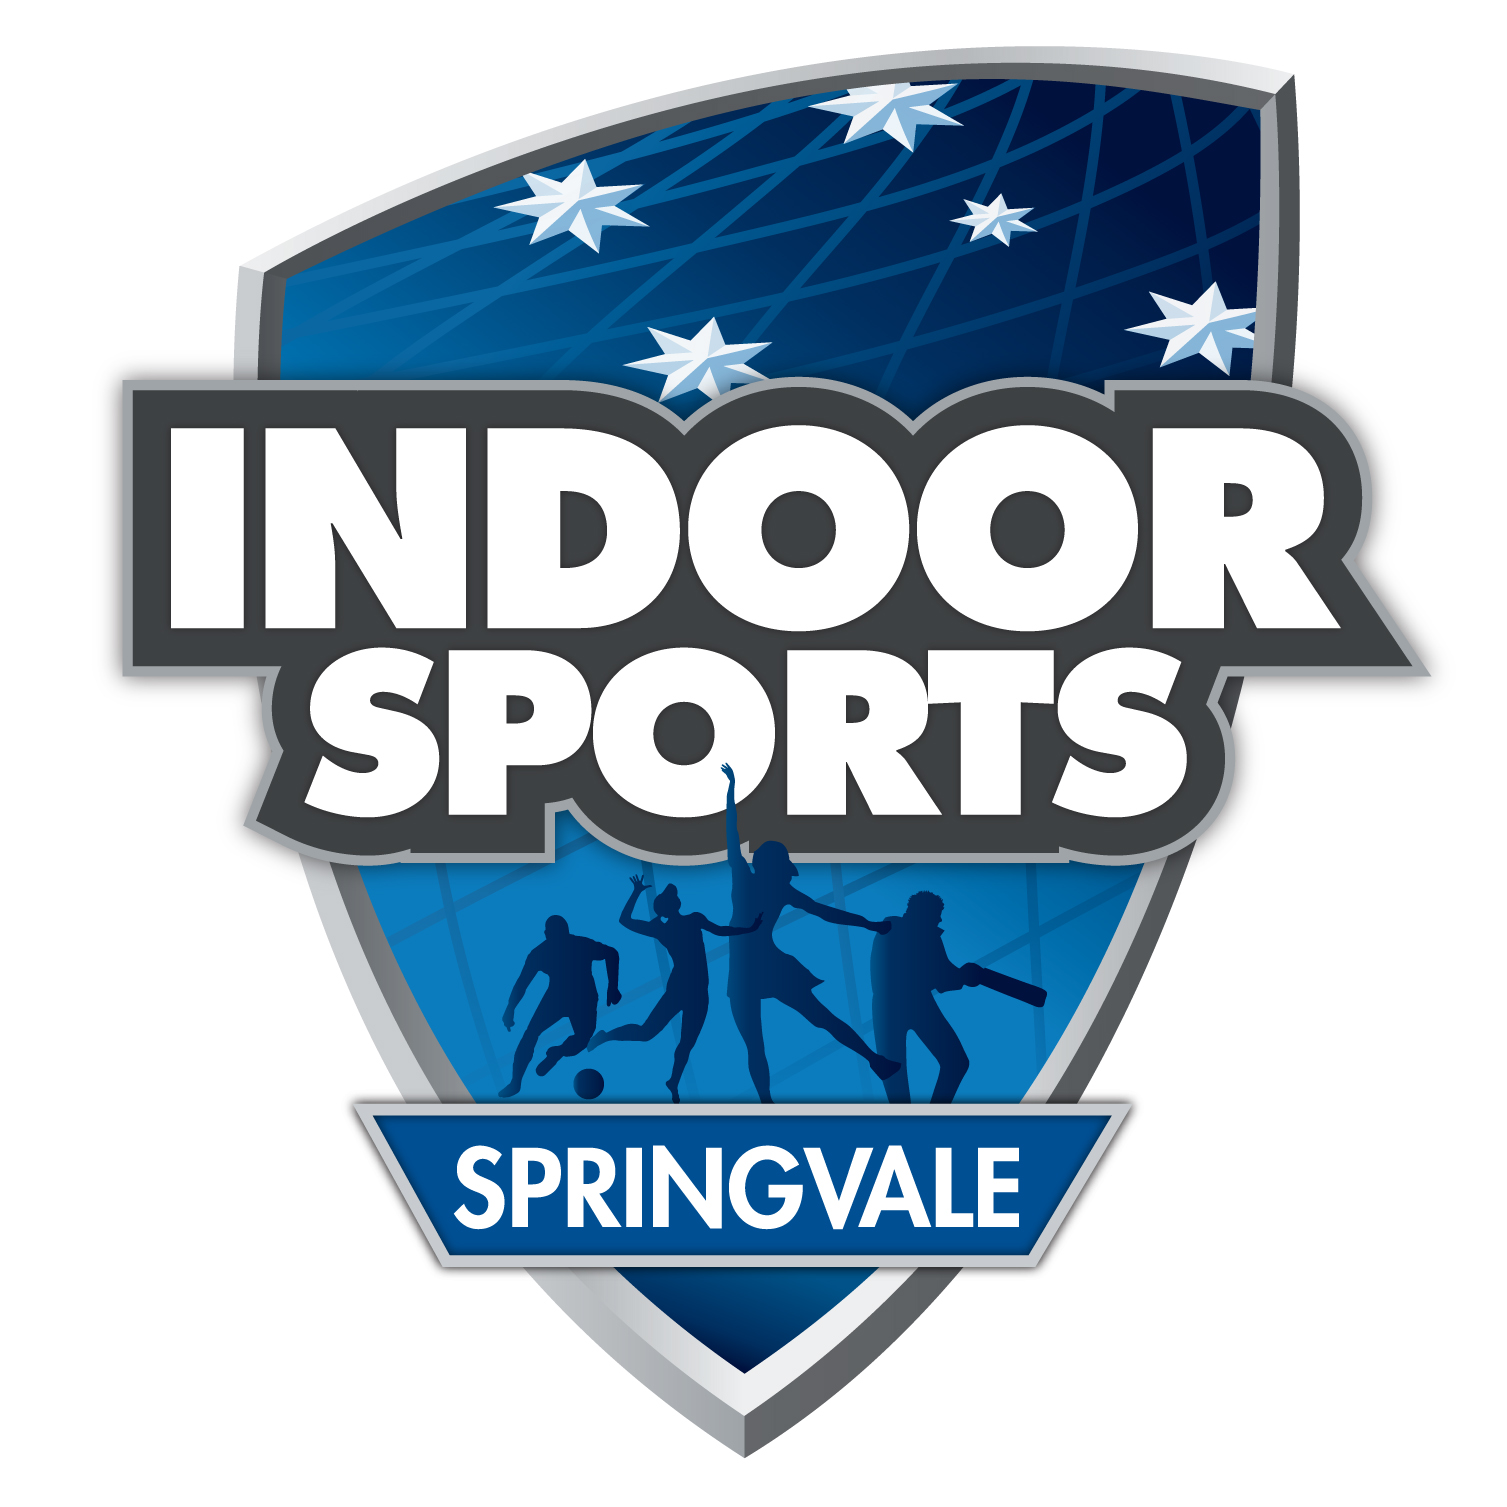 Springvale Indoor Sports Centre